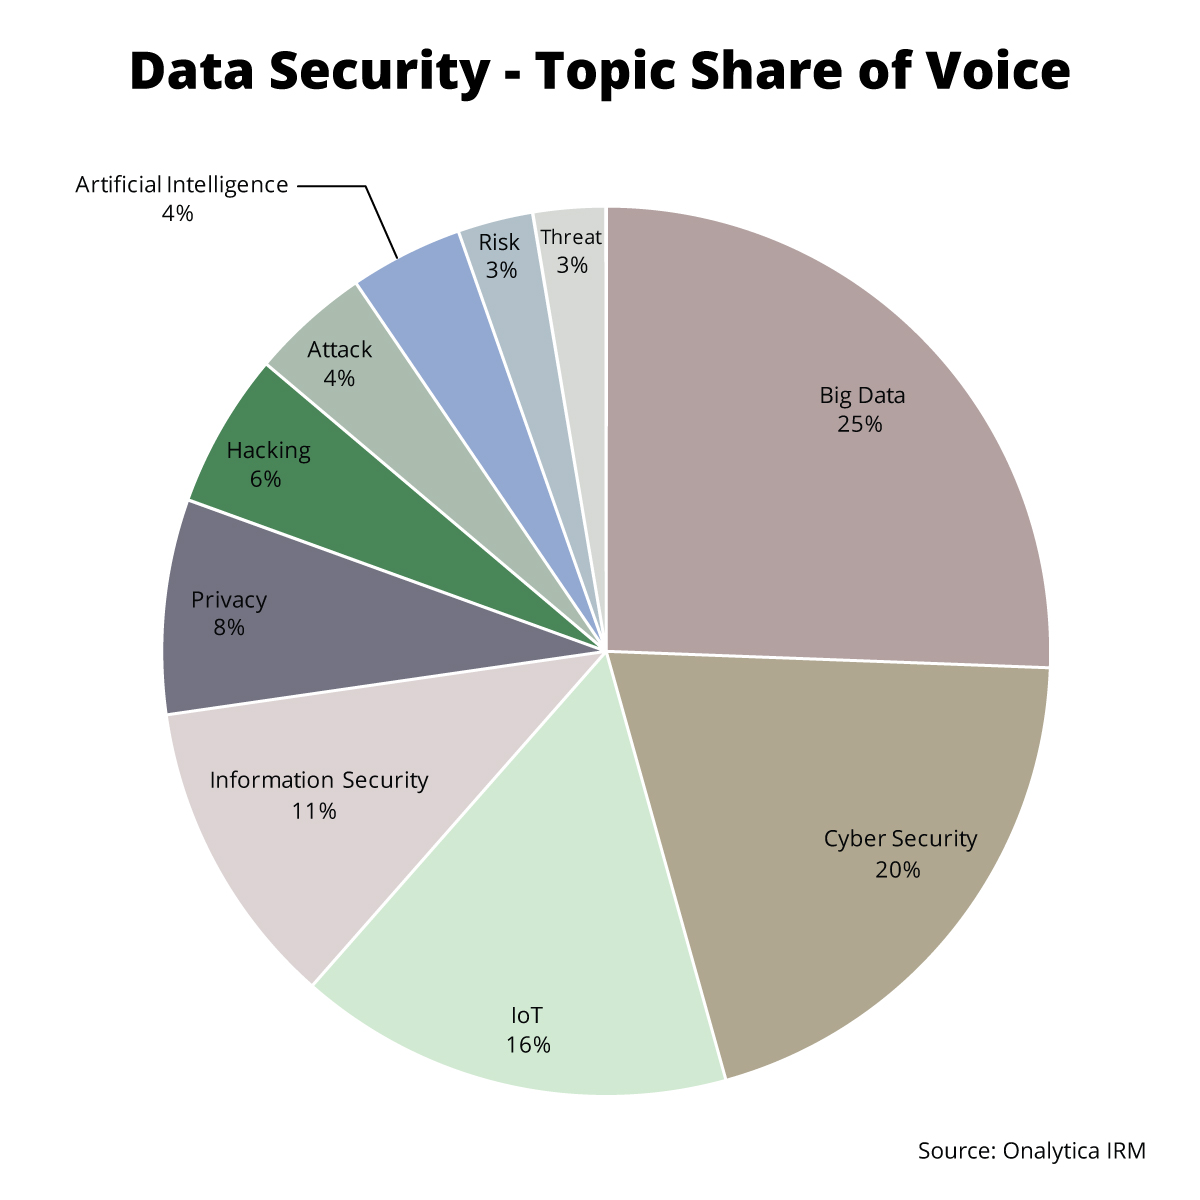 Onalytica Data Security Top 100 Influencers and Brands - Topic Share of Voice